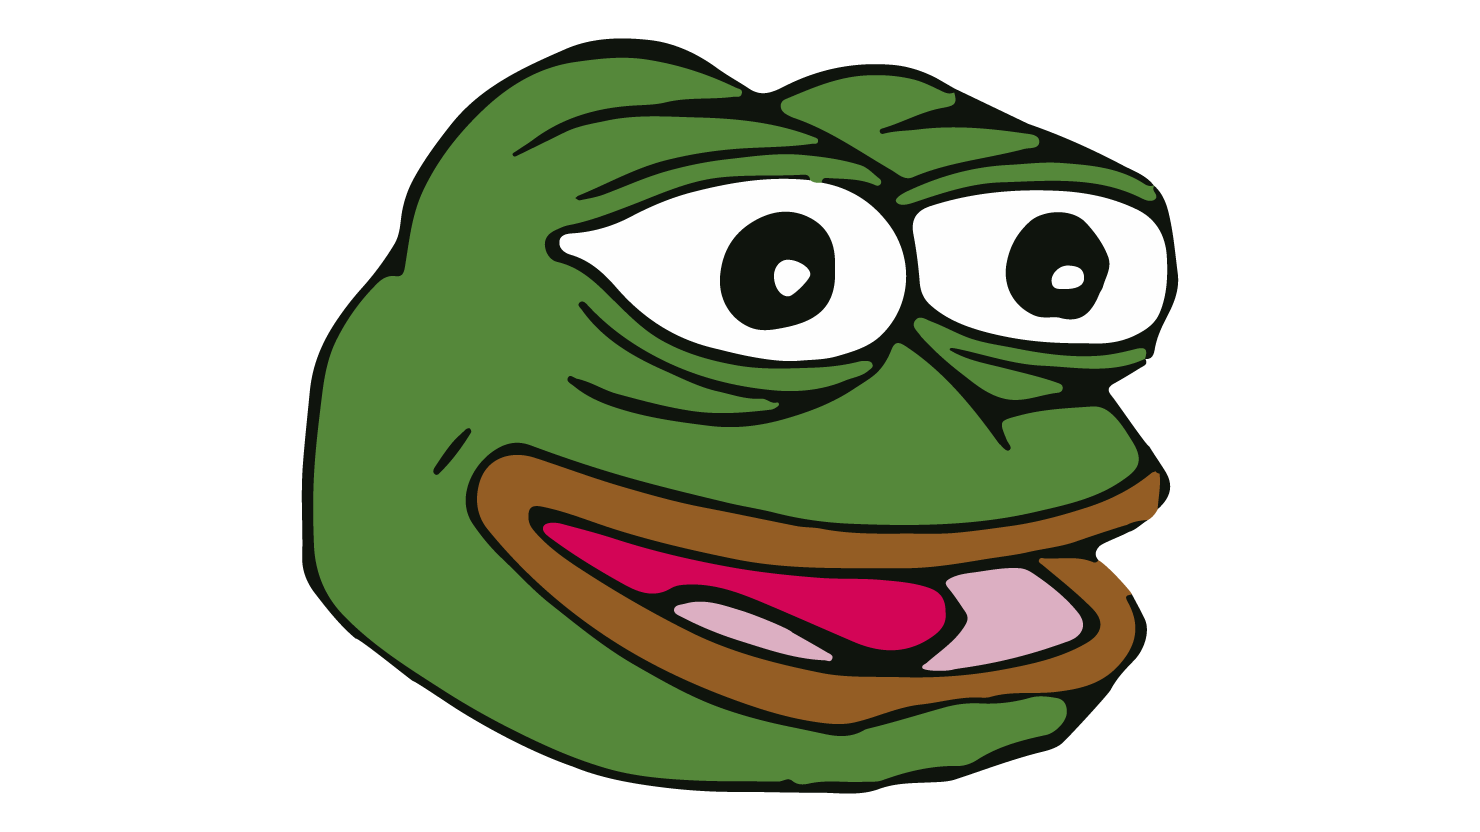 Frogs clipart open mouth. Appreciation thread for greek